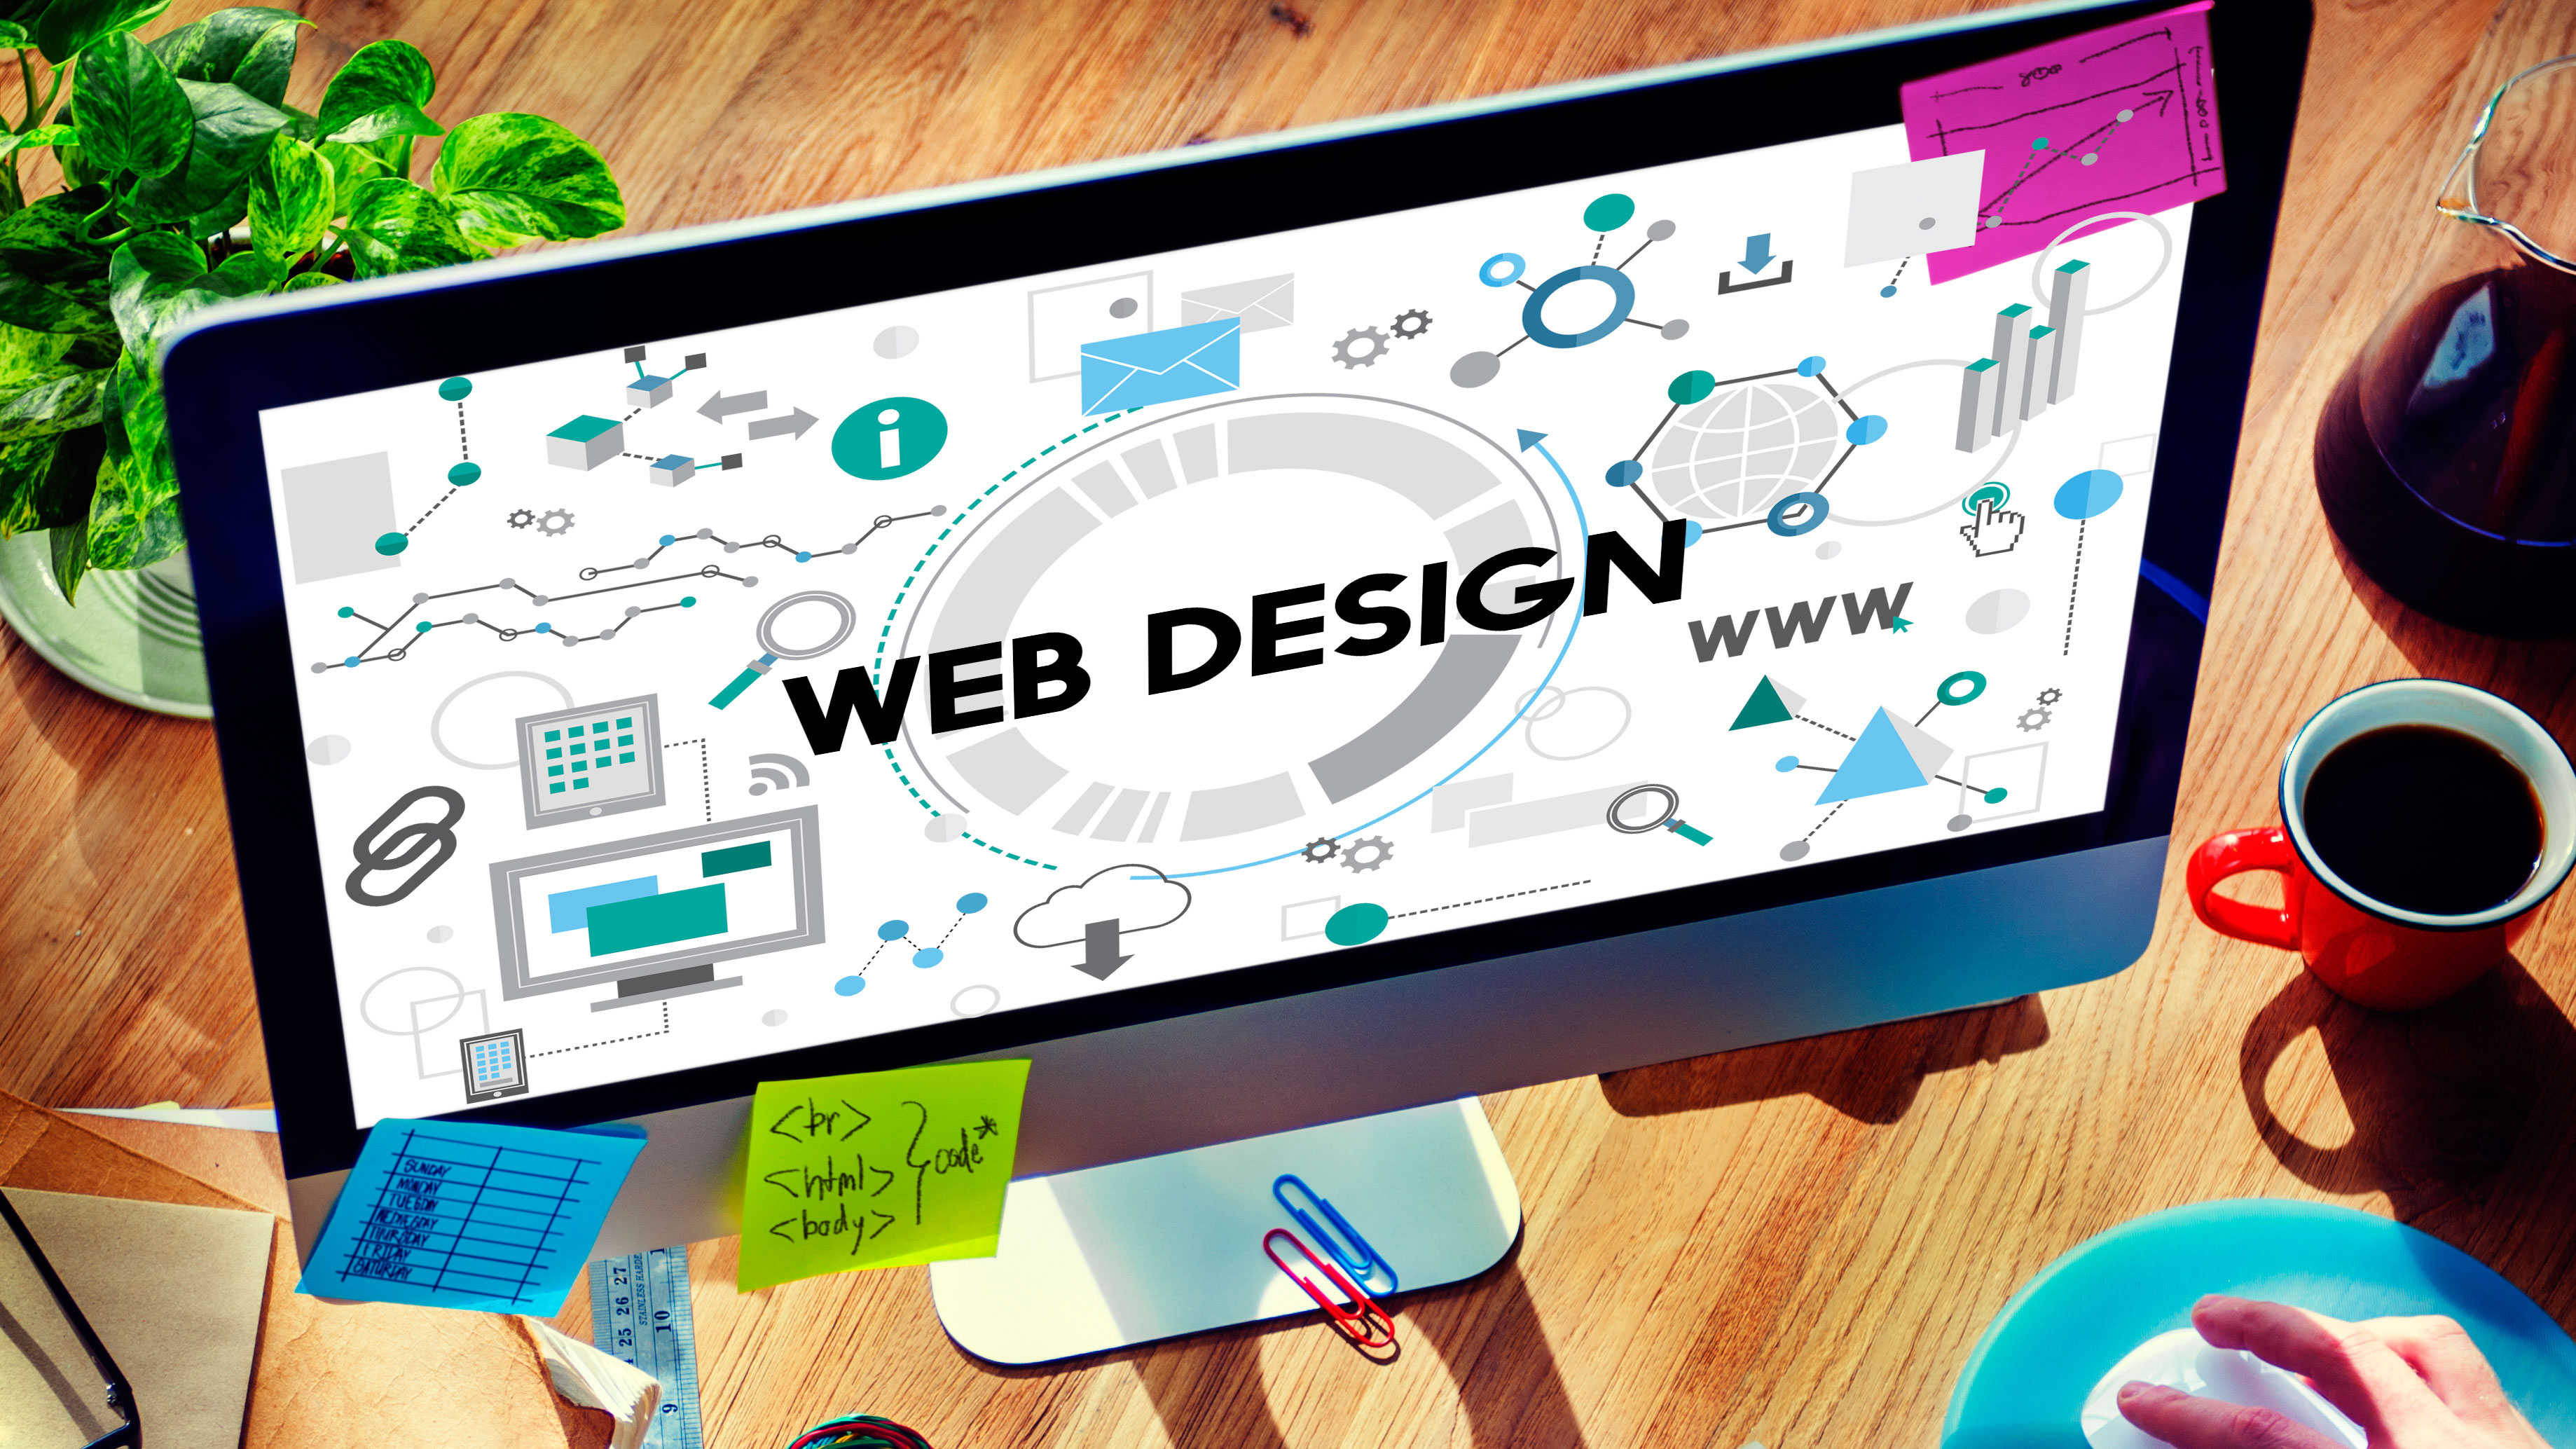 The next big thing in web design: 7 trends you need to know | Creative Bloq